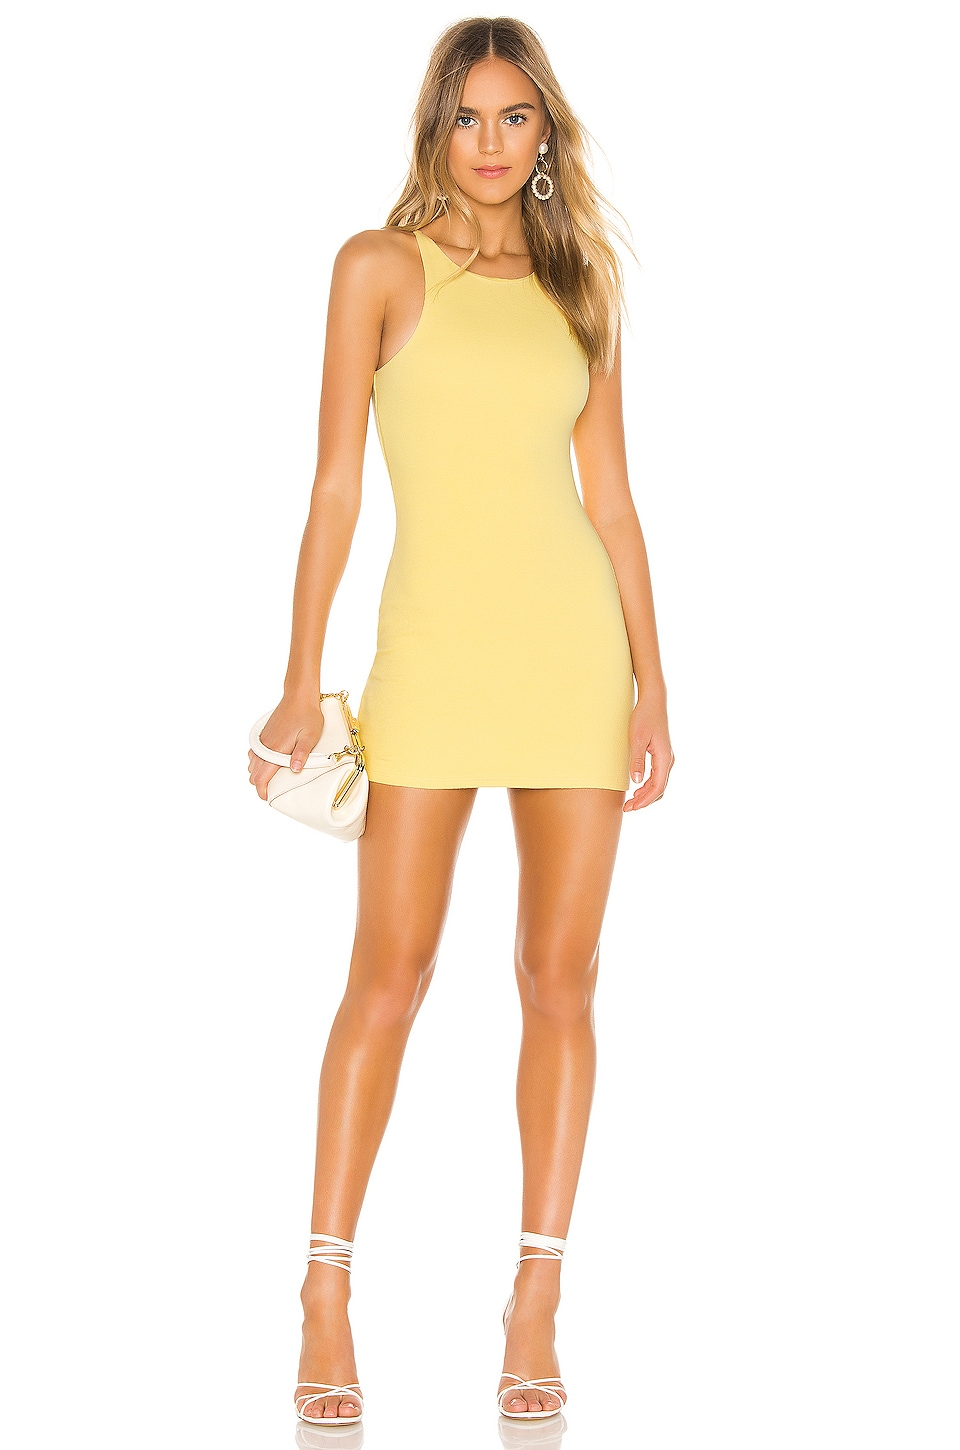 Privacy Please Neilson Mini Dress in Citrus Yellow